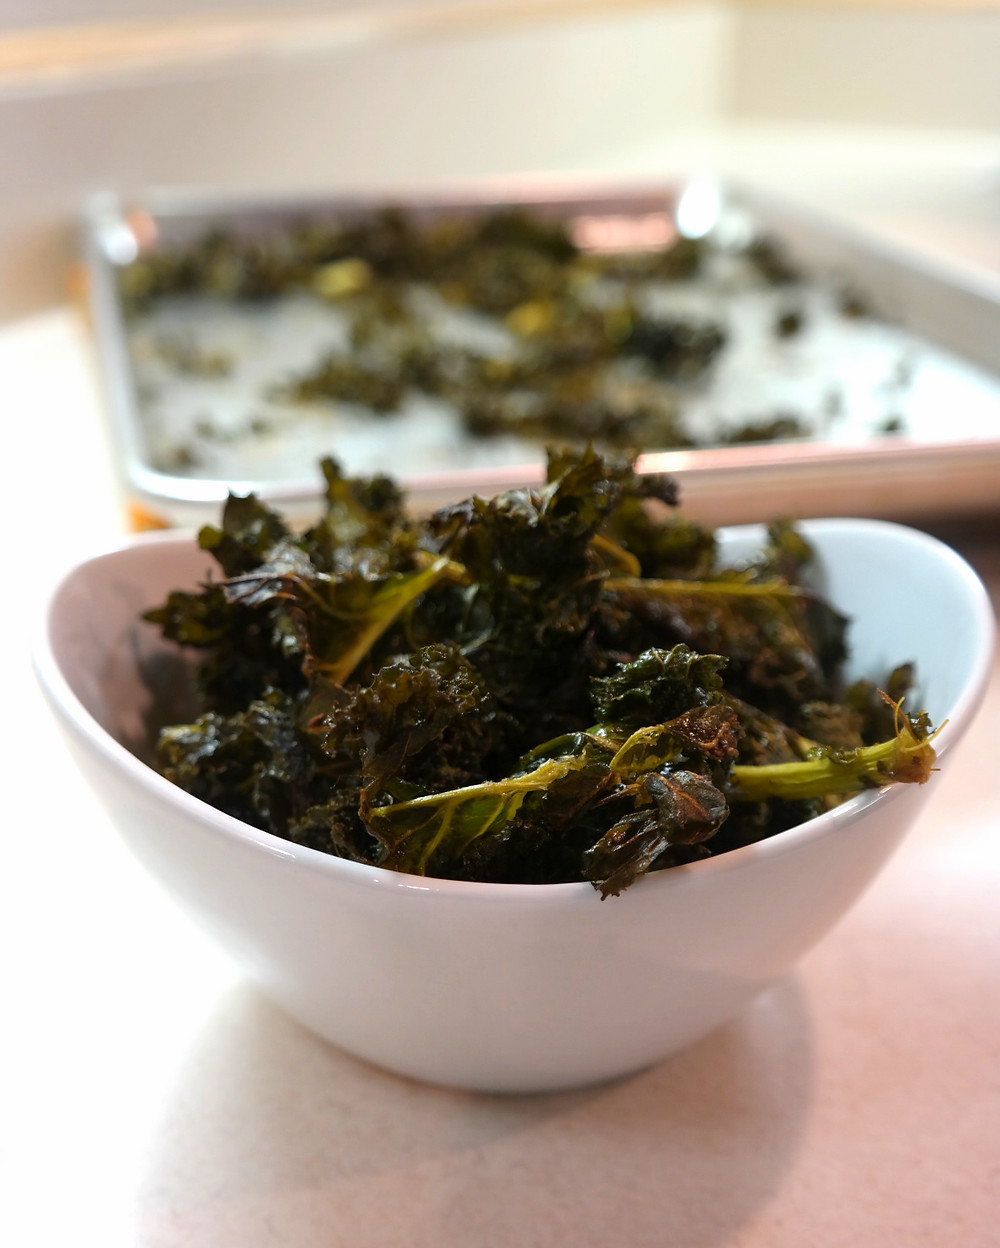 Salt and Vinegar Kale Chips | eatlovegarlic.com @eatlovegarlic